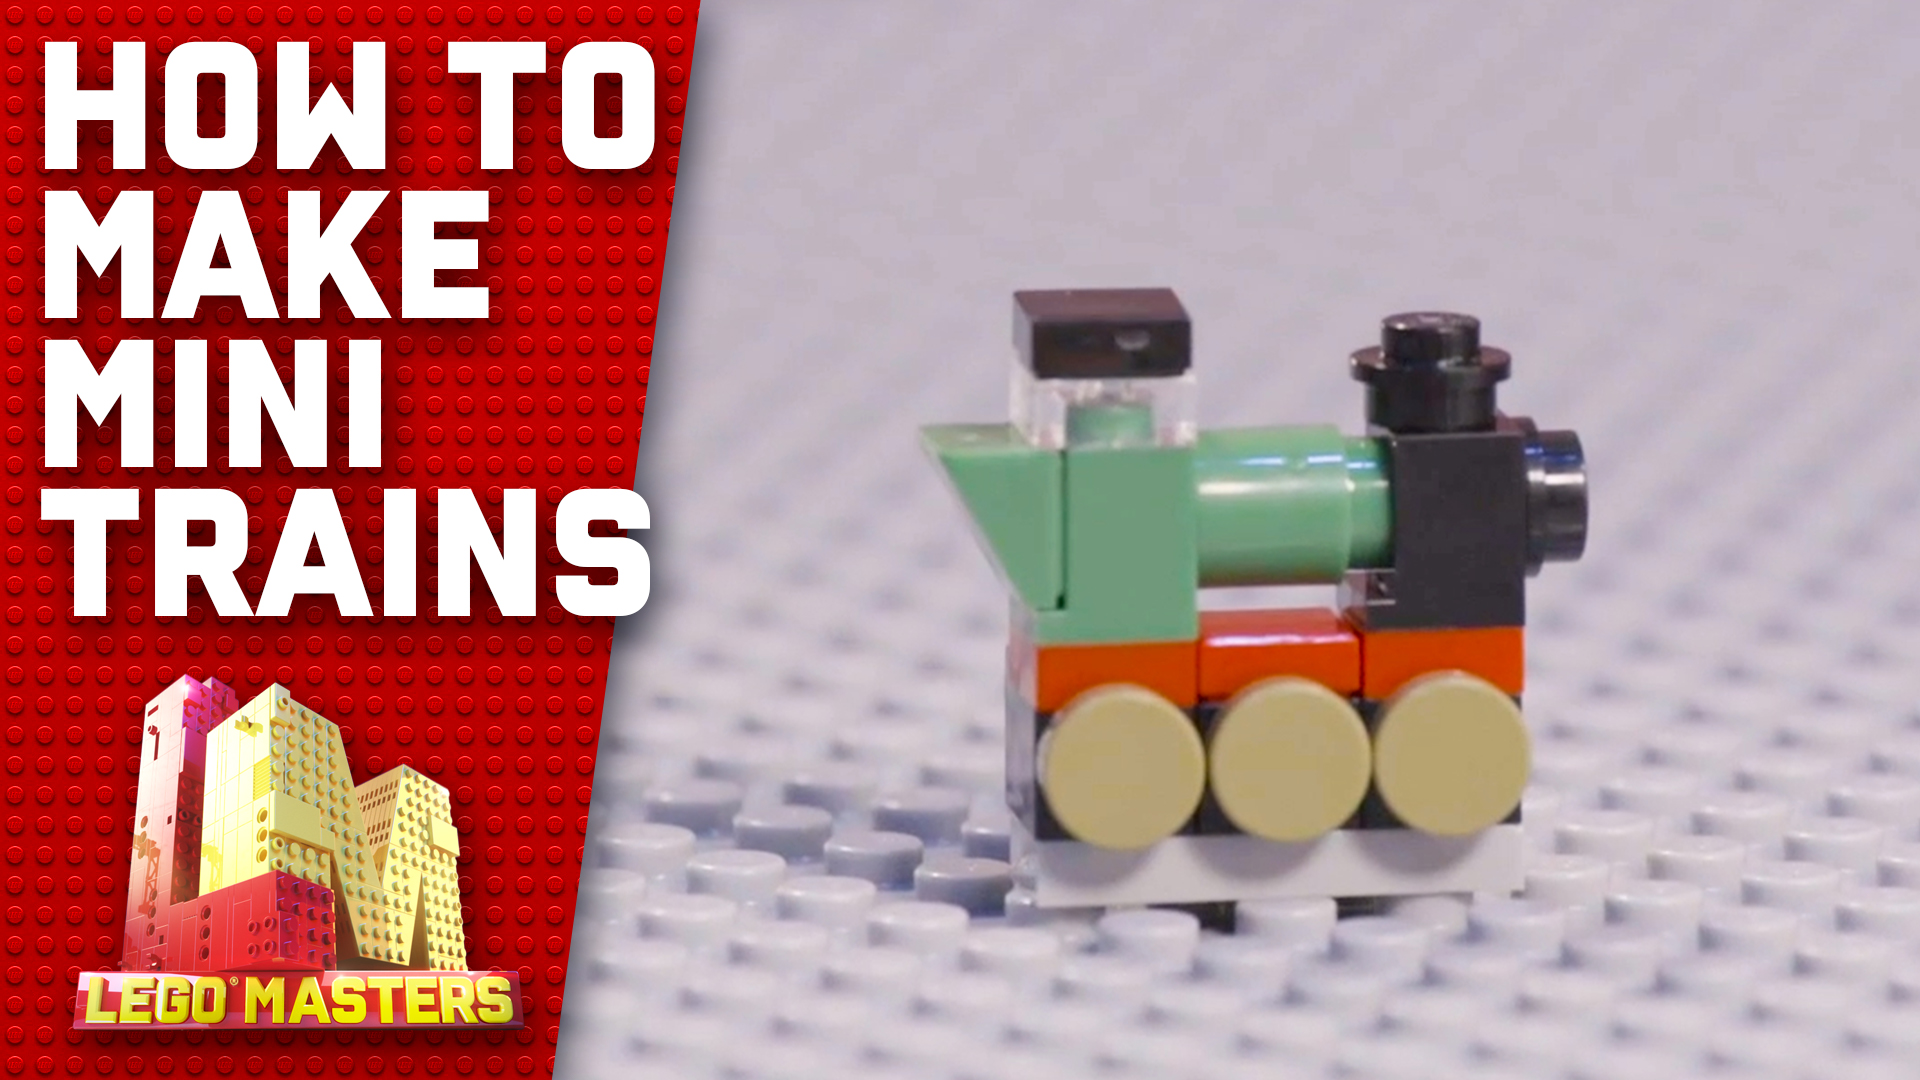 Exclusive: Ryan and Gabby offer some tips and tricks on how to make mini trains